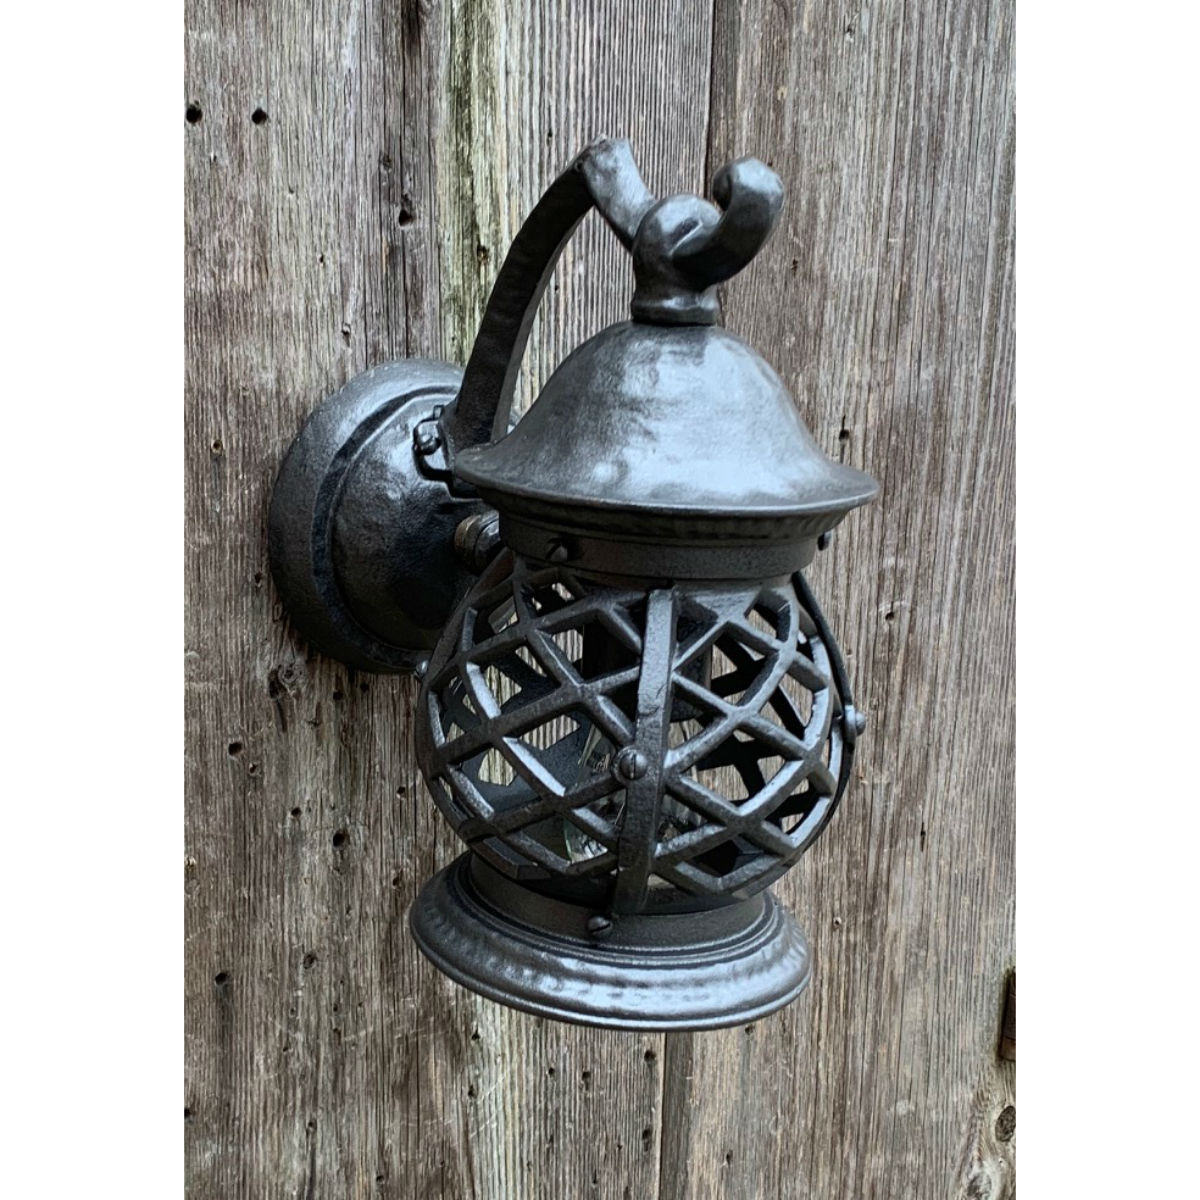 L20008 - Antique Tudor Revival Style Exterior Sconce